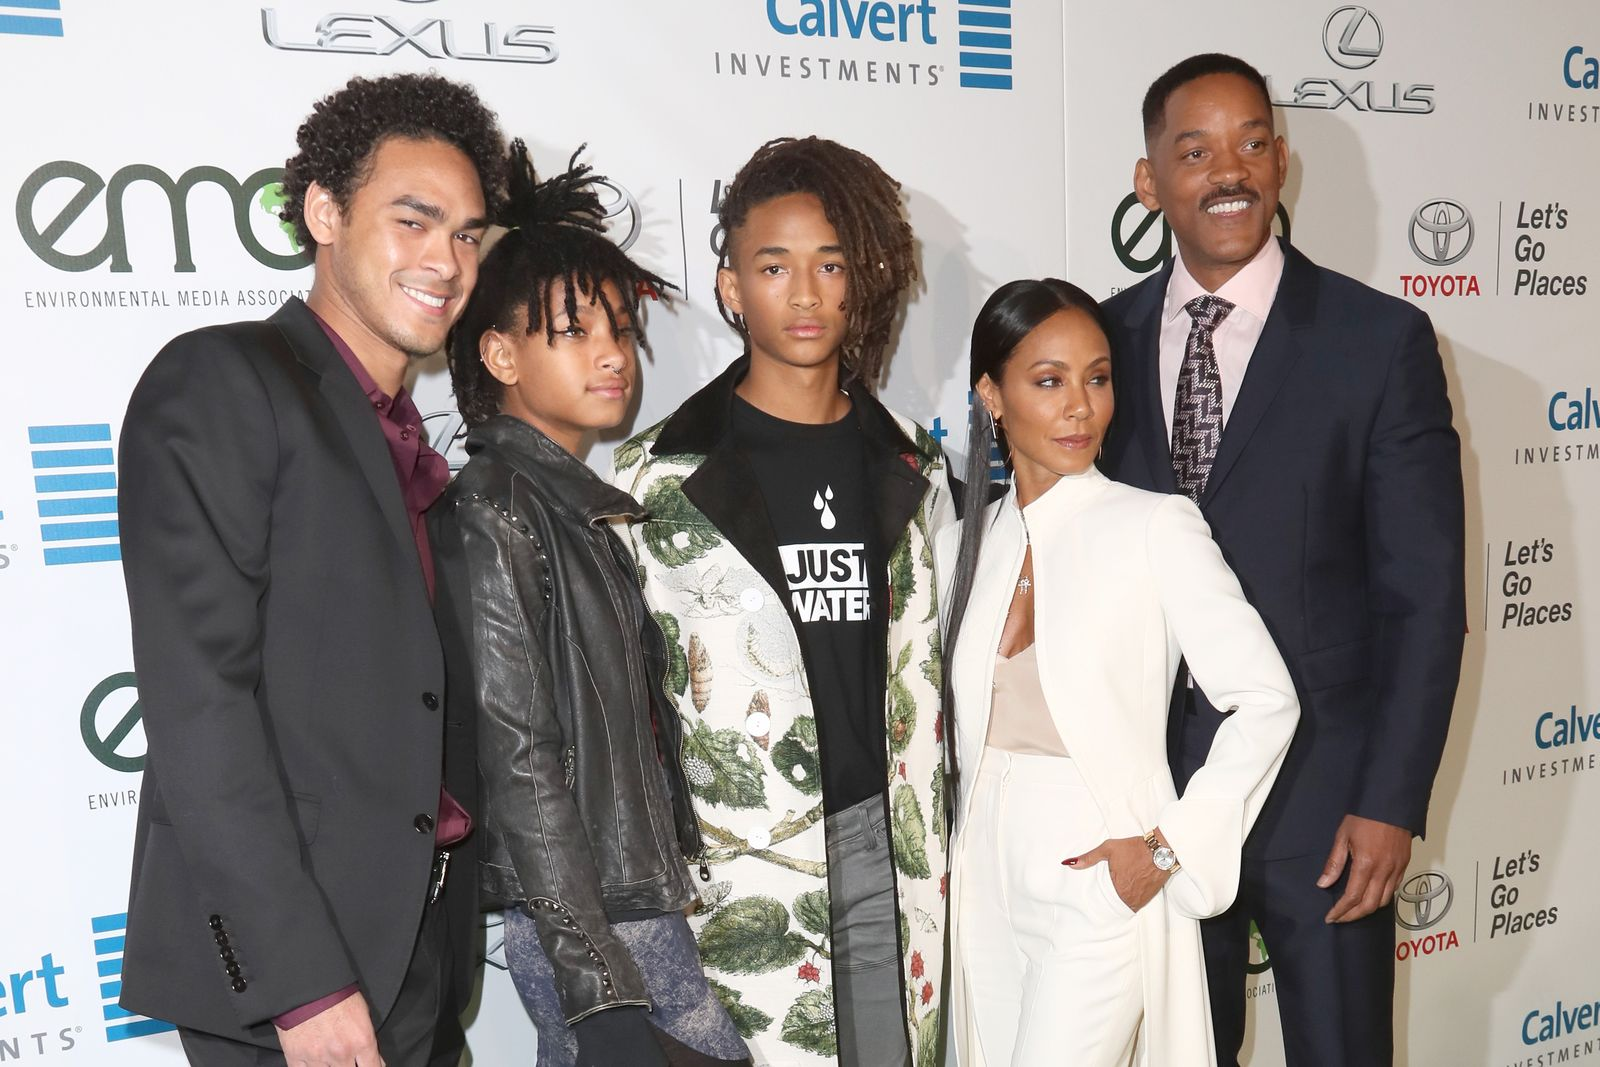 Trey Smith, Willow Smith, Jaden Smith, Jada Pinkett-Smith and Will Smith/Photo:Getty Images